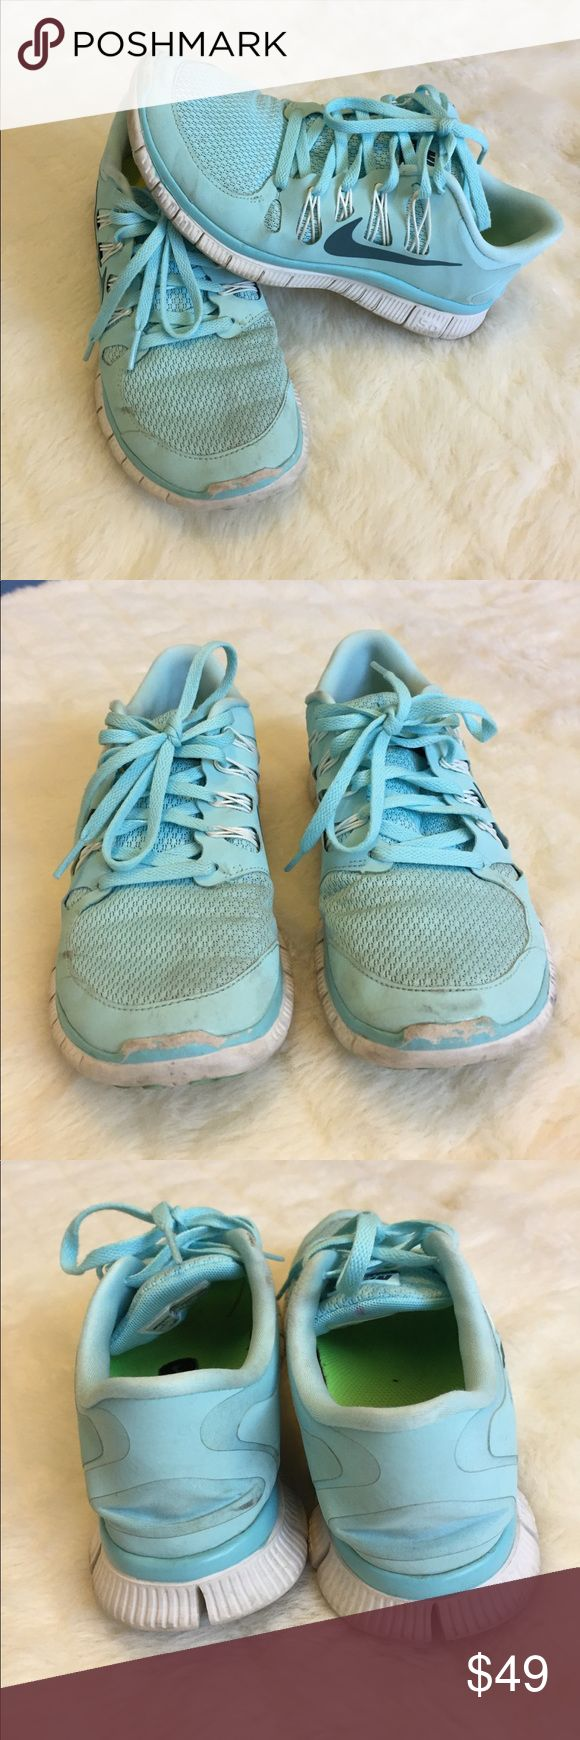 Nike Free 5.0, Tiffany Blue 8.5 Nike Free 5.0 Tennis Shoes in Tiffany Blue. Size 8.5. They're a bit dirty, but still in good shape and have a lot of life left in them. VERY comfortable! These also have the slot under the sole if you use a Nike Tracker Chip. Waffle sole. Nike Shoes Sneakers